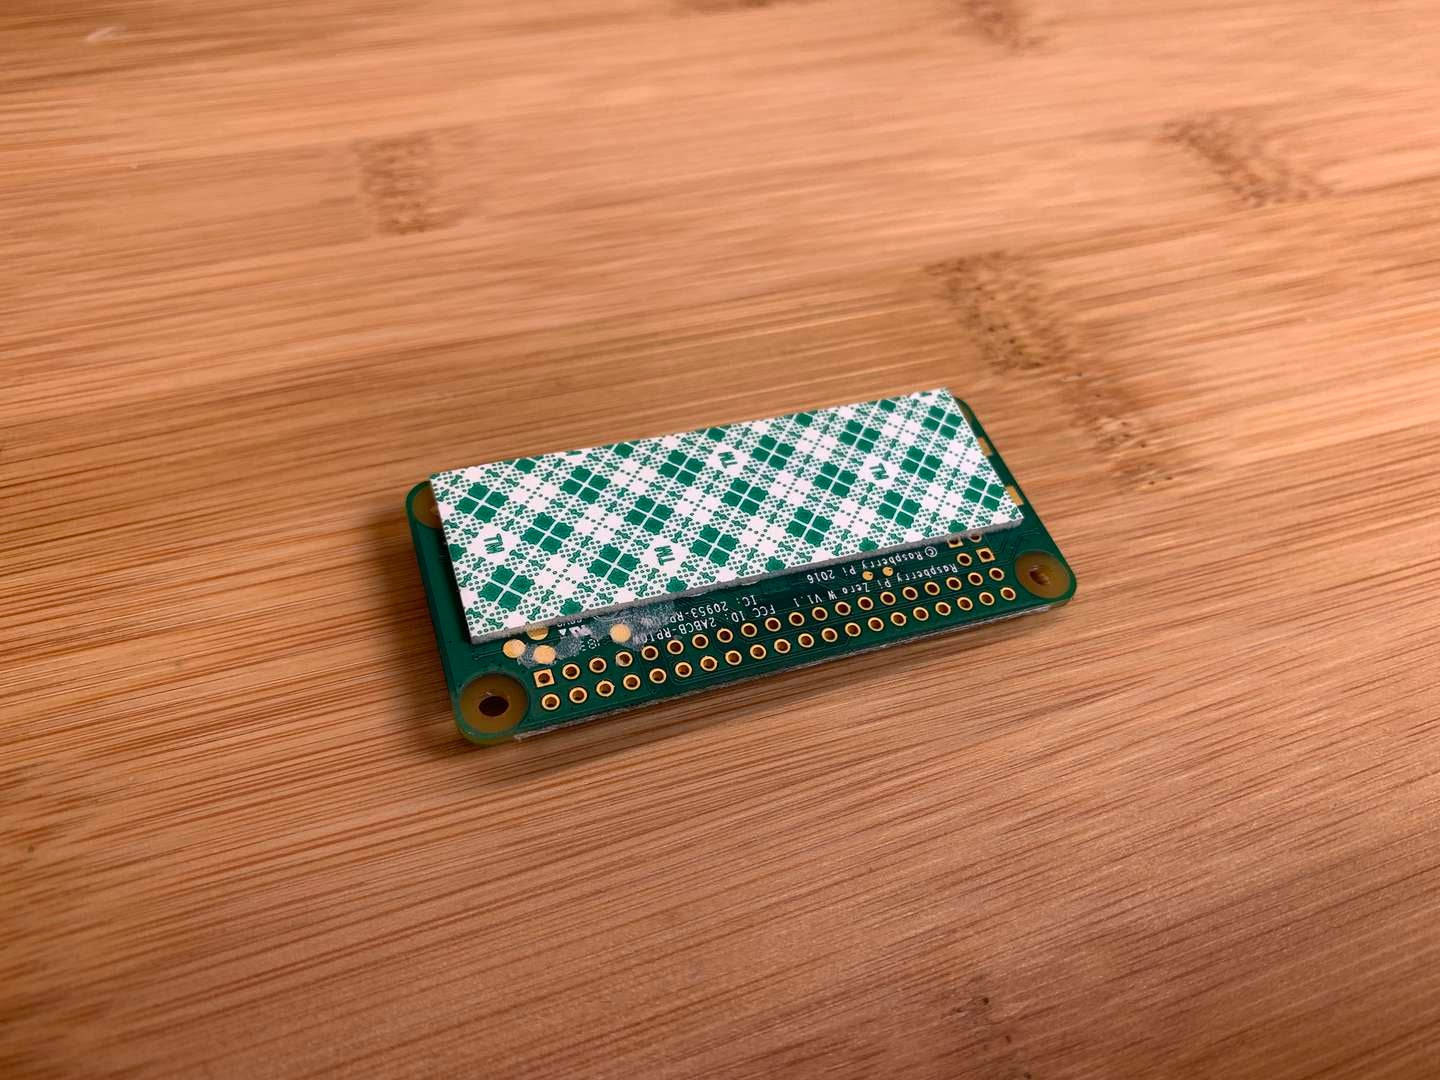 A Raspberry Pi Zero with foam tape